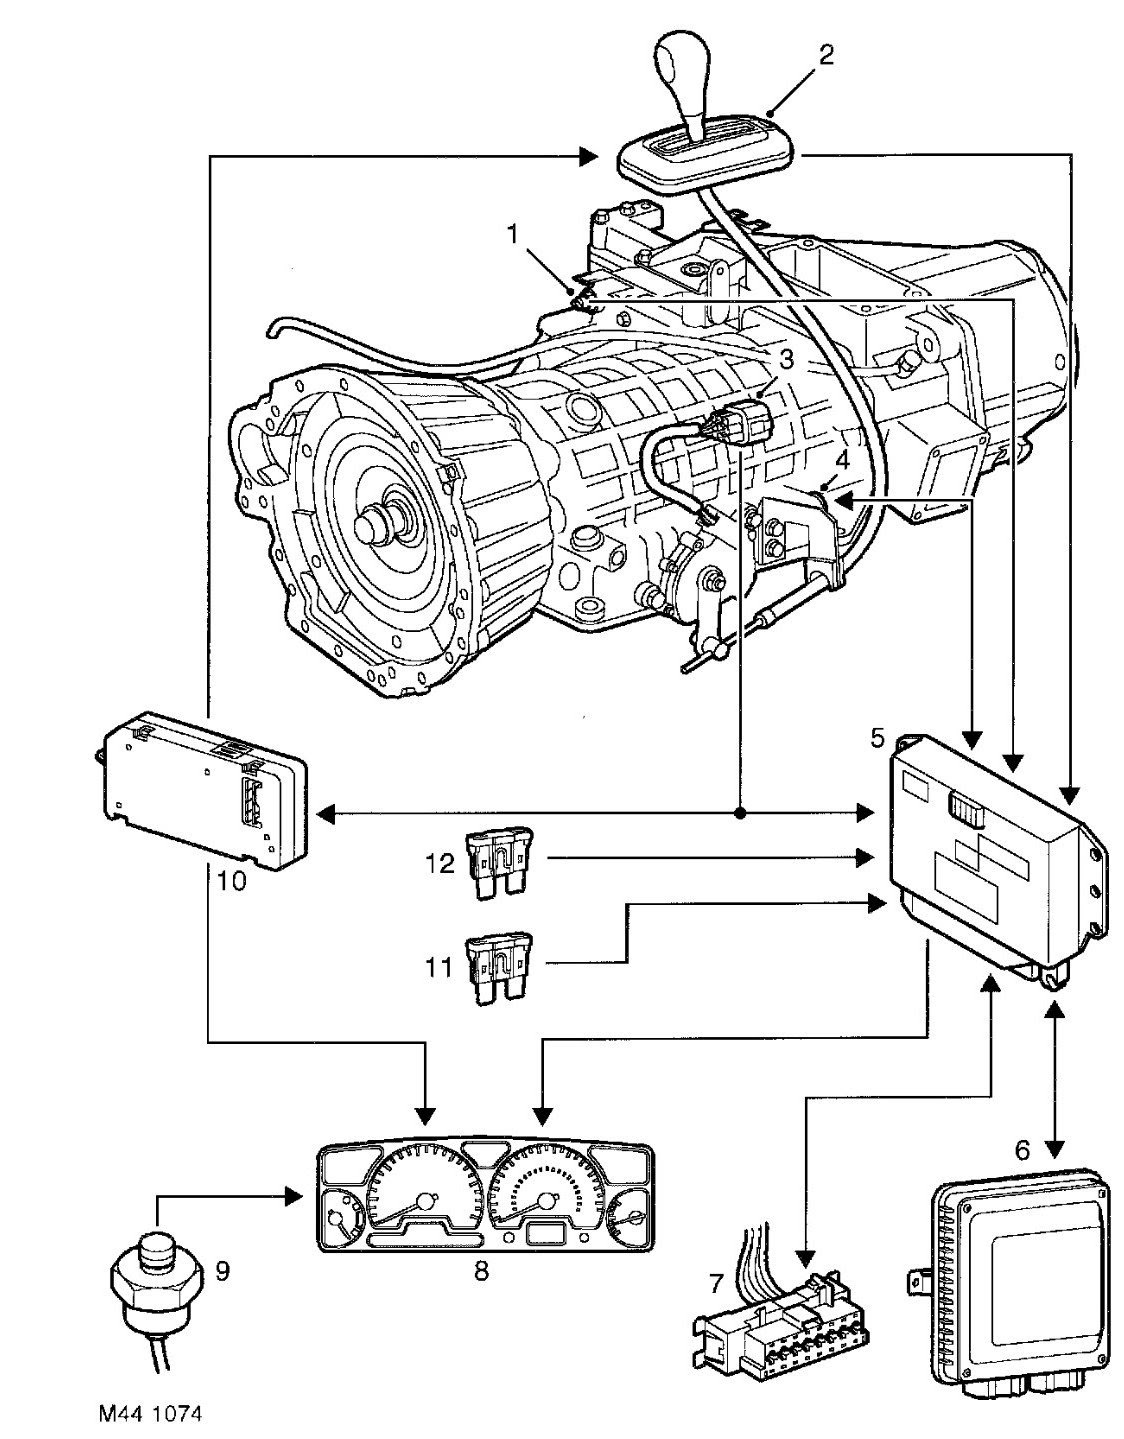 2002 Land Rover Discovery Fuse Diagram